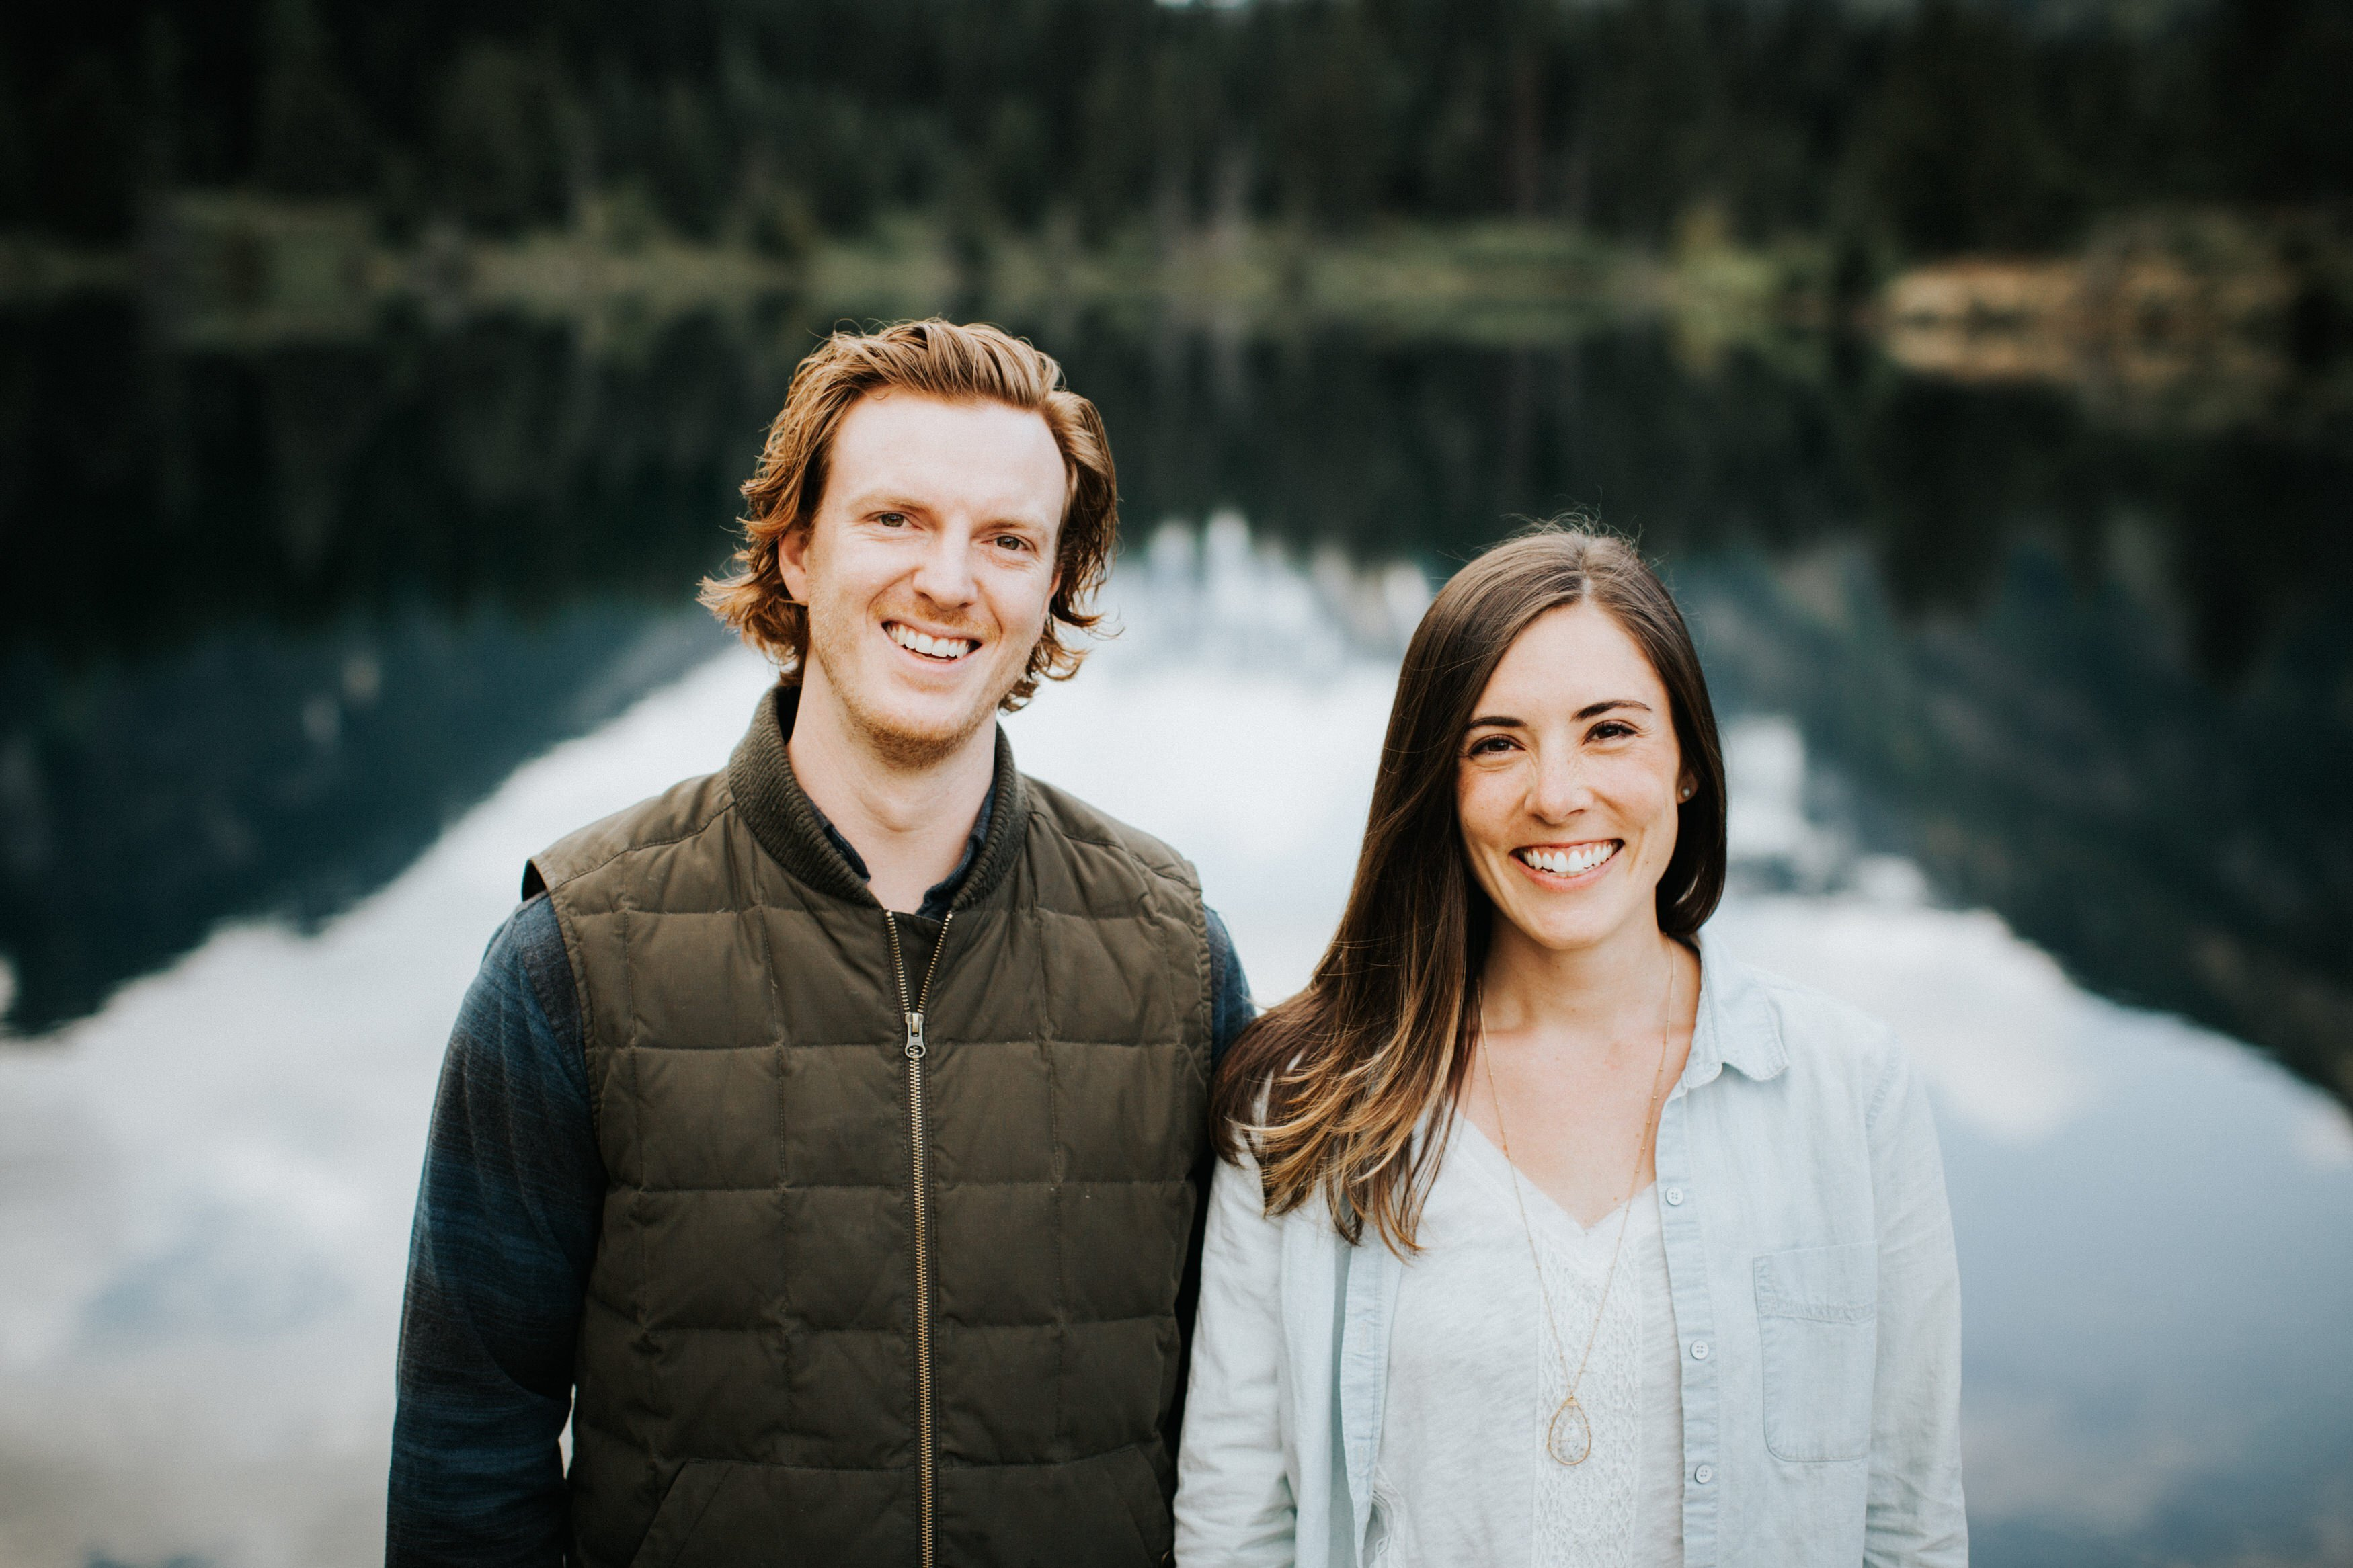 A couple smiles during their engagement session at gold creek pond